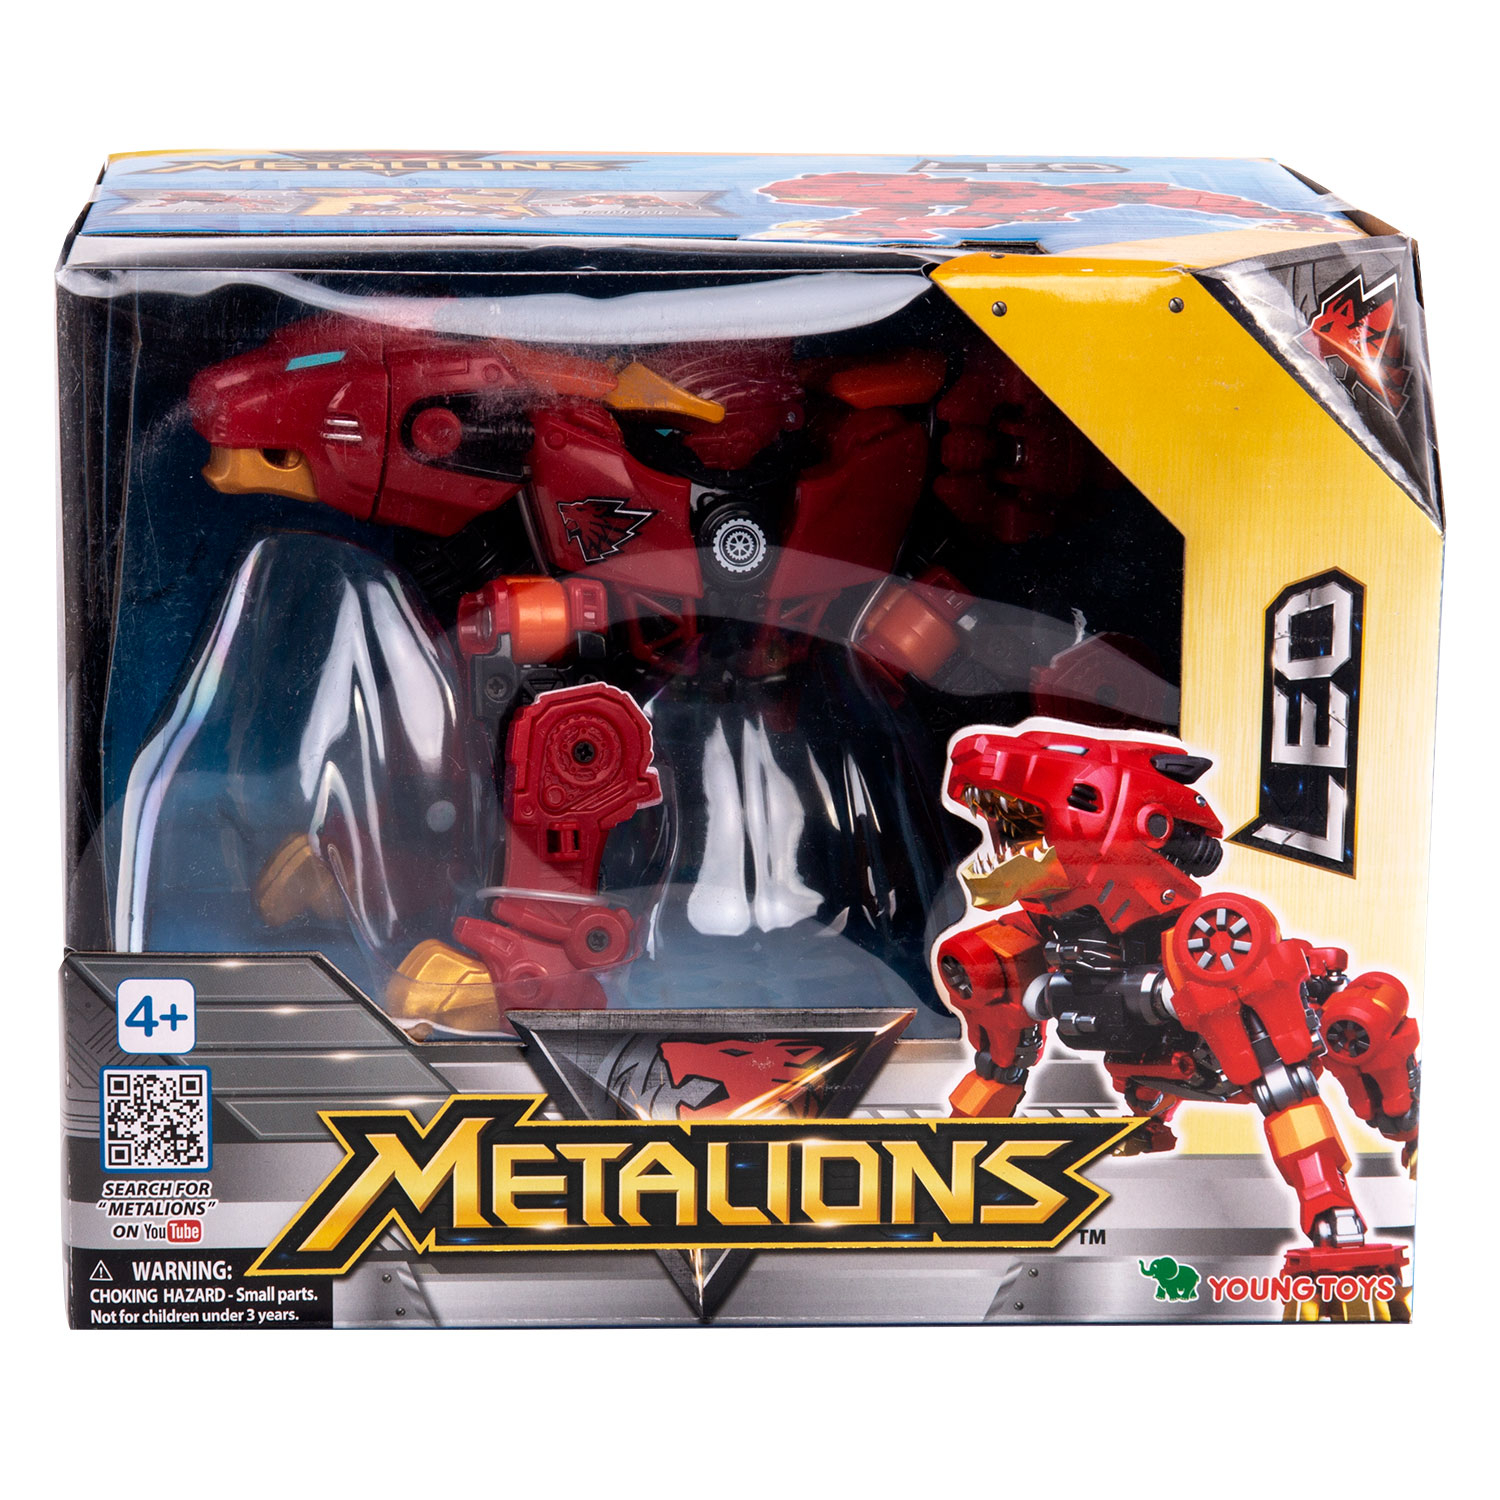 YOUNG TOYS METALIONS Main Leo Action Figure